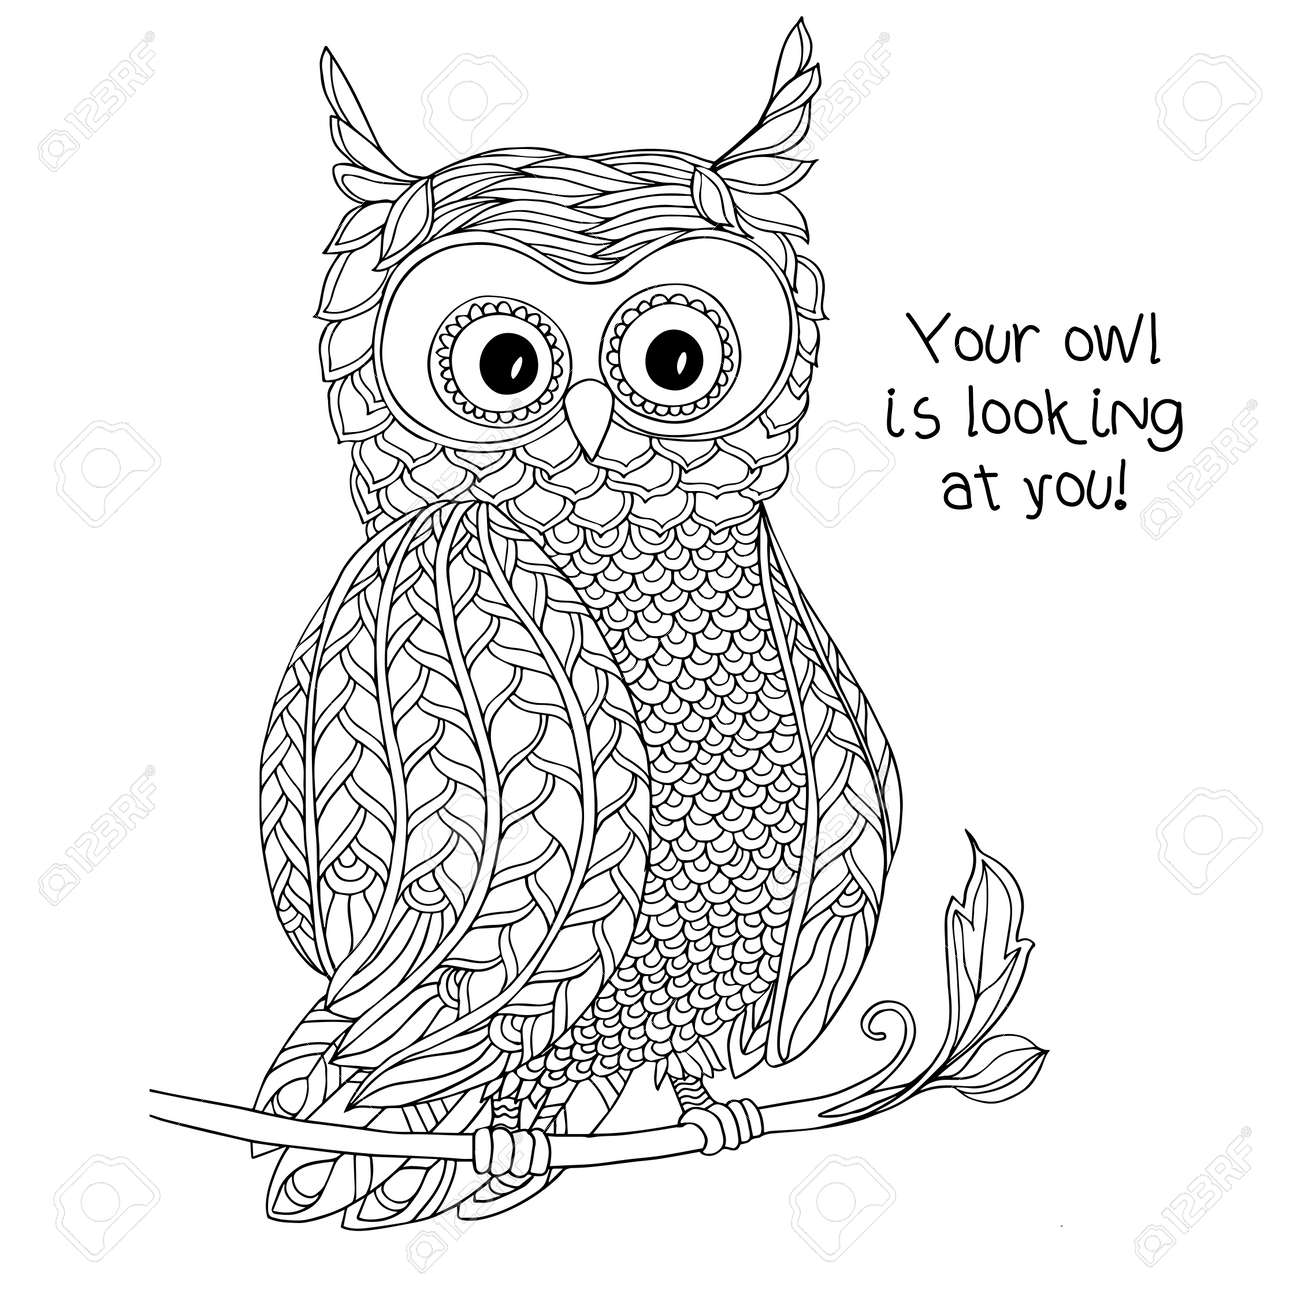 Zen coloring books for children - Coloring Book For Adult And Older Children Coloring Page With Cute Owl Outline Drawing